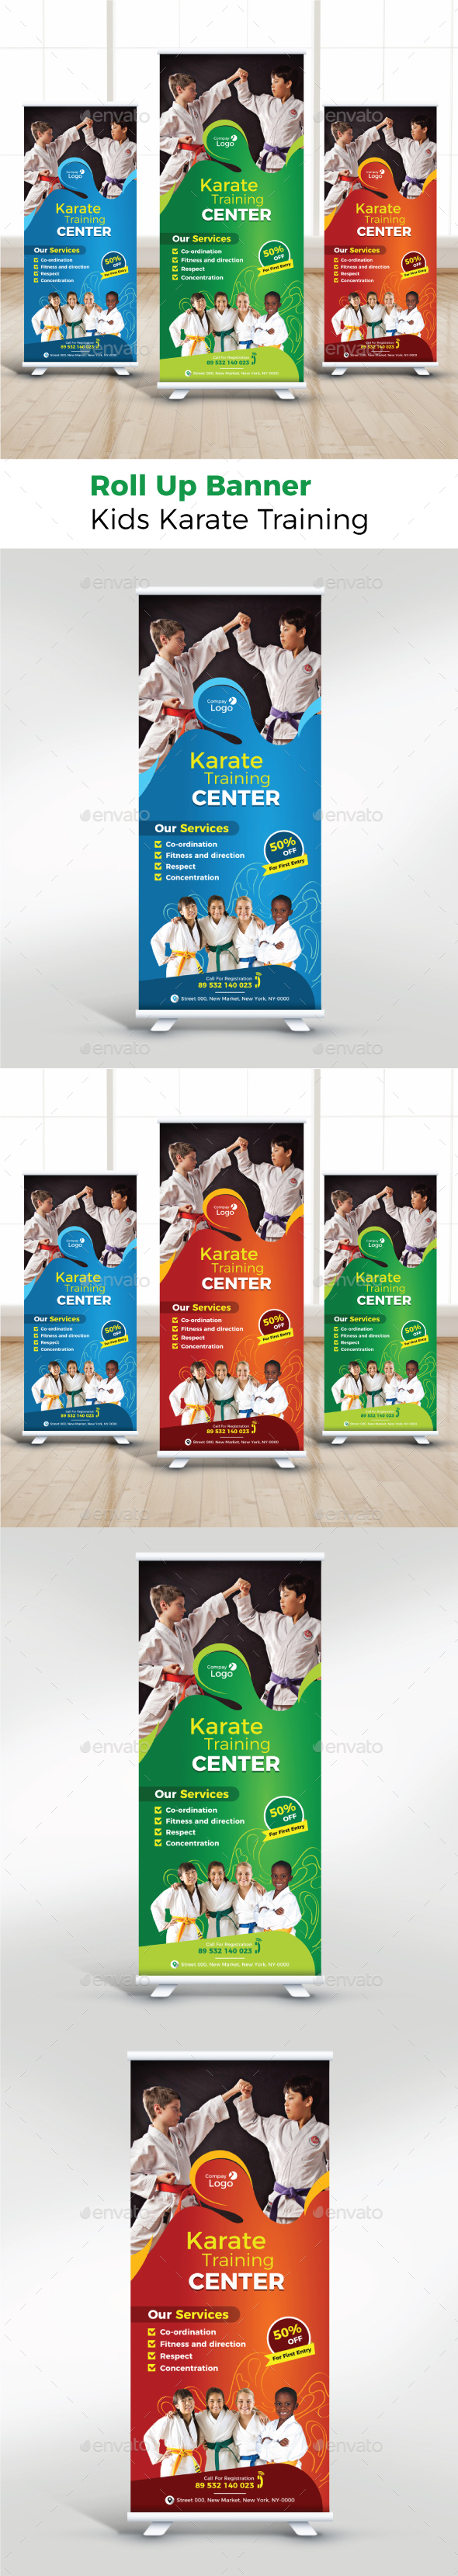 Kids Karate Training Roll Up Banner - Signage Print Templates